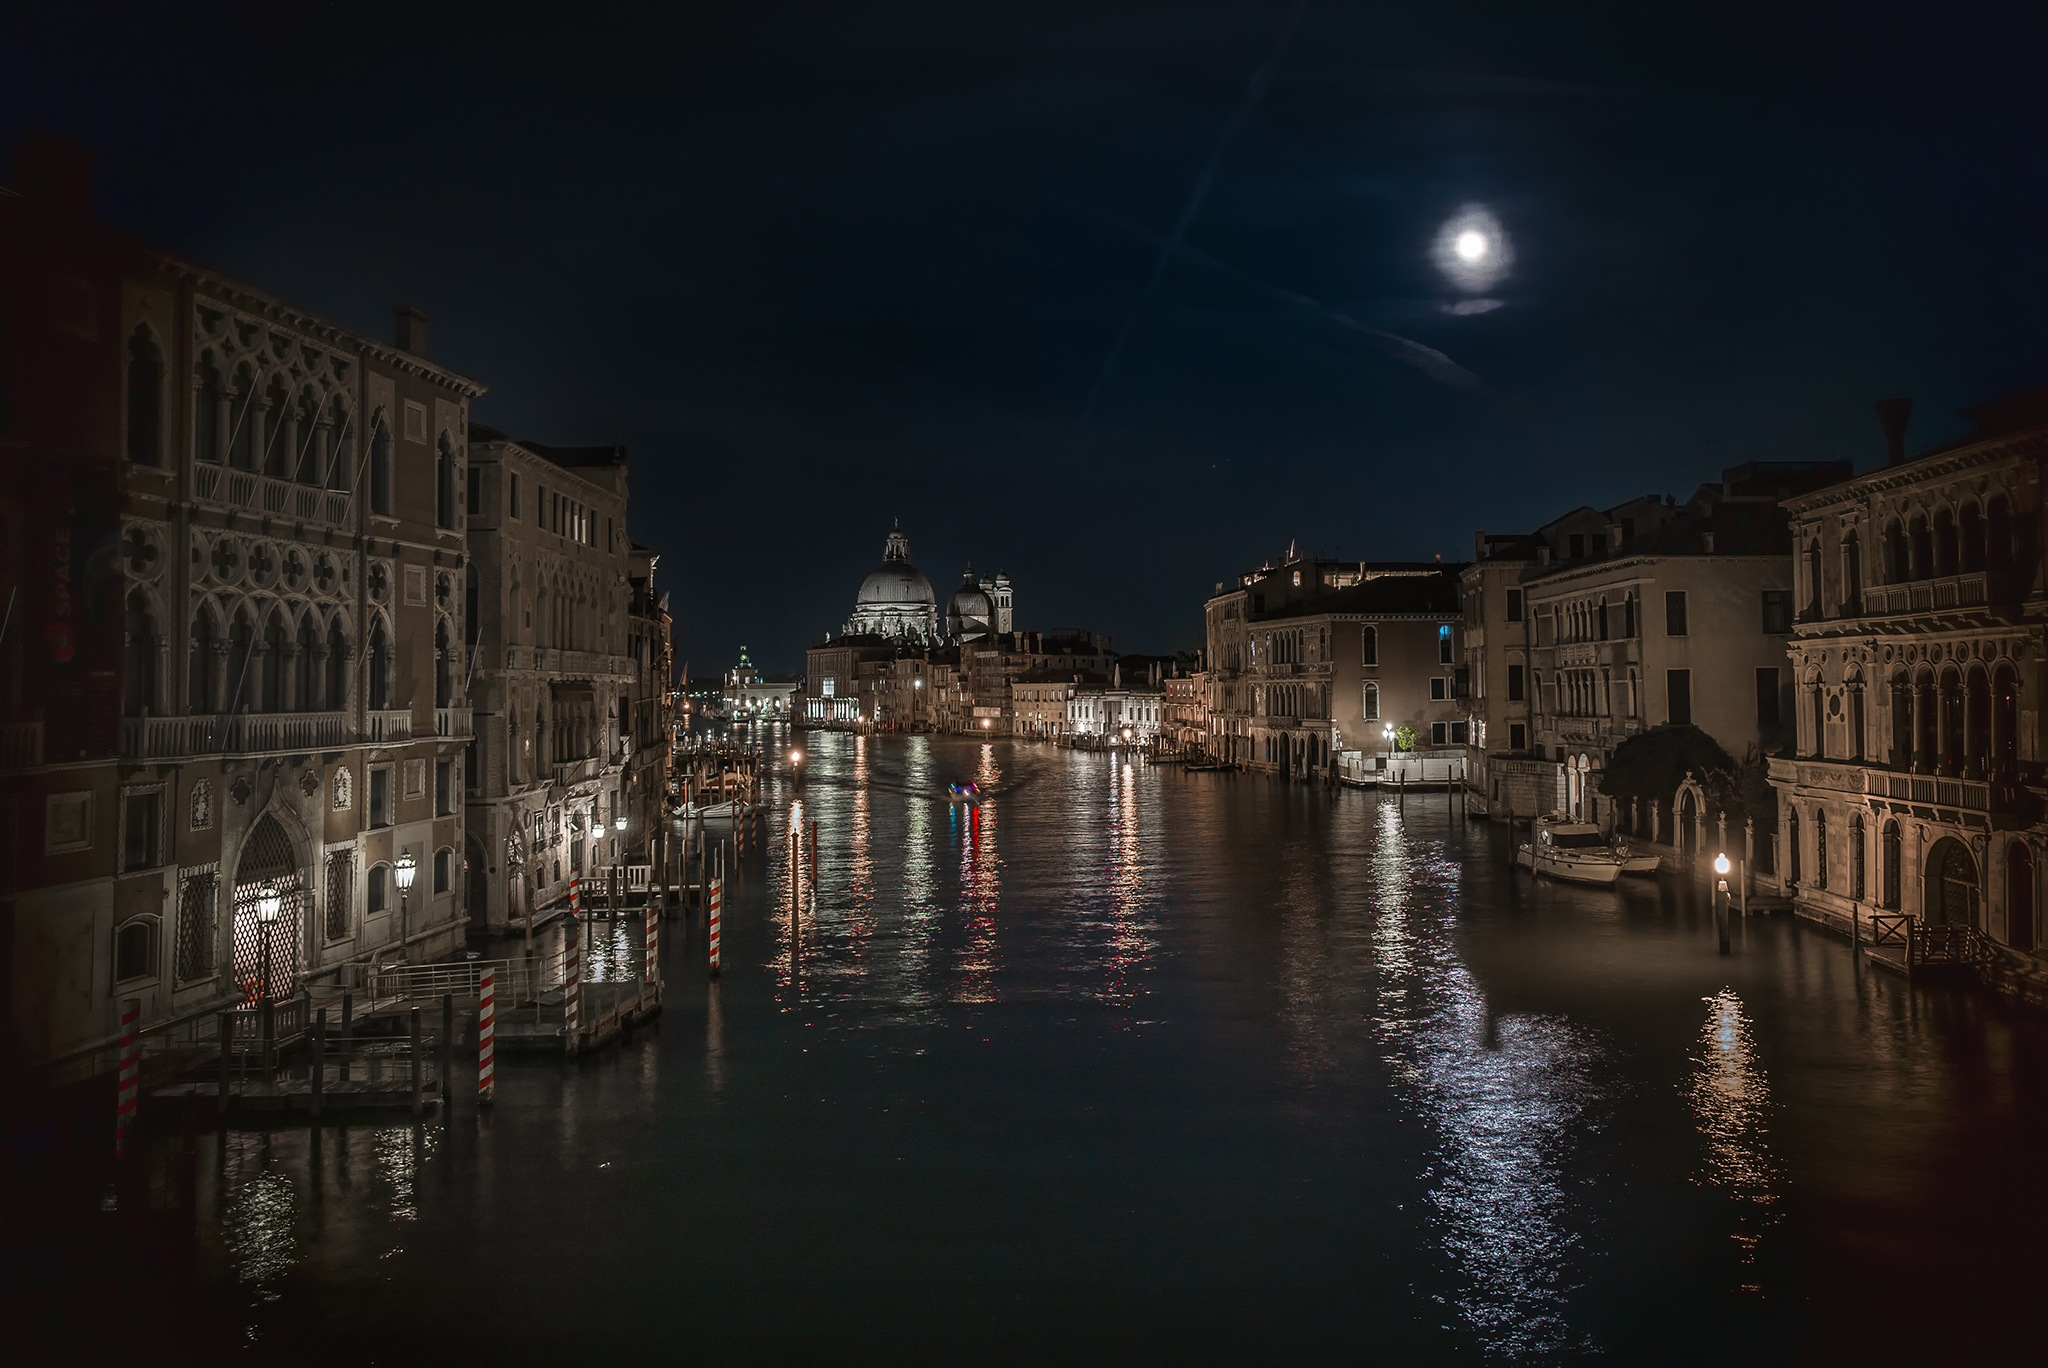 Moonlit Night on the Canal Grande - Venezia, Italy by Sean Sweeney